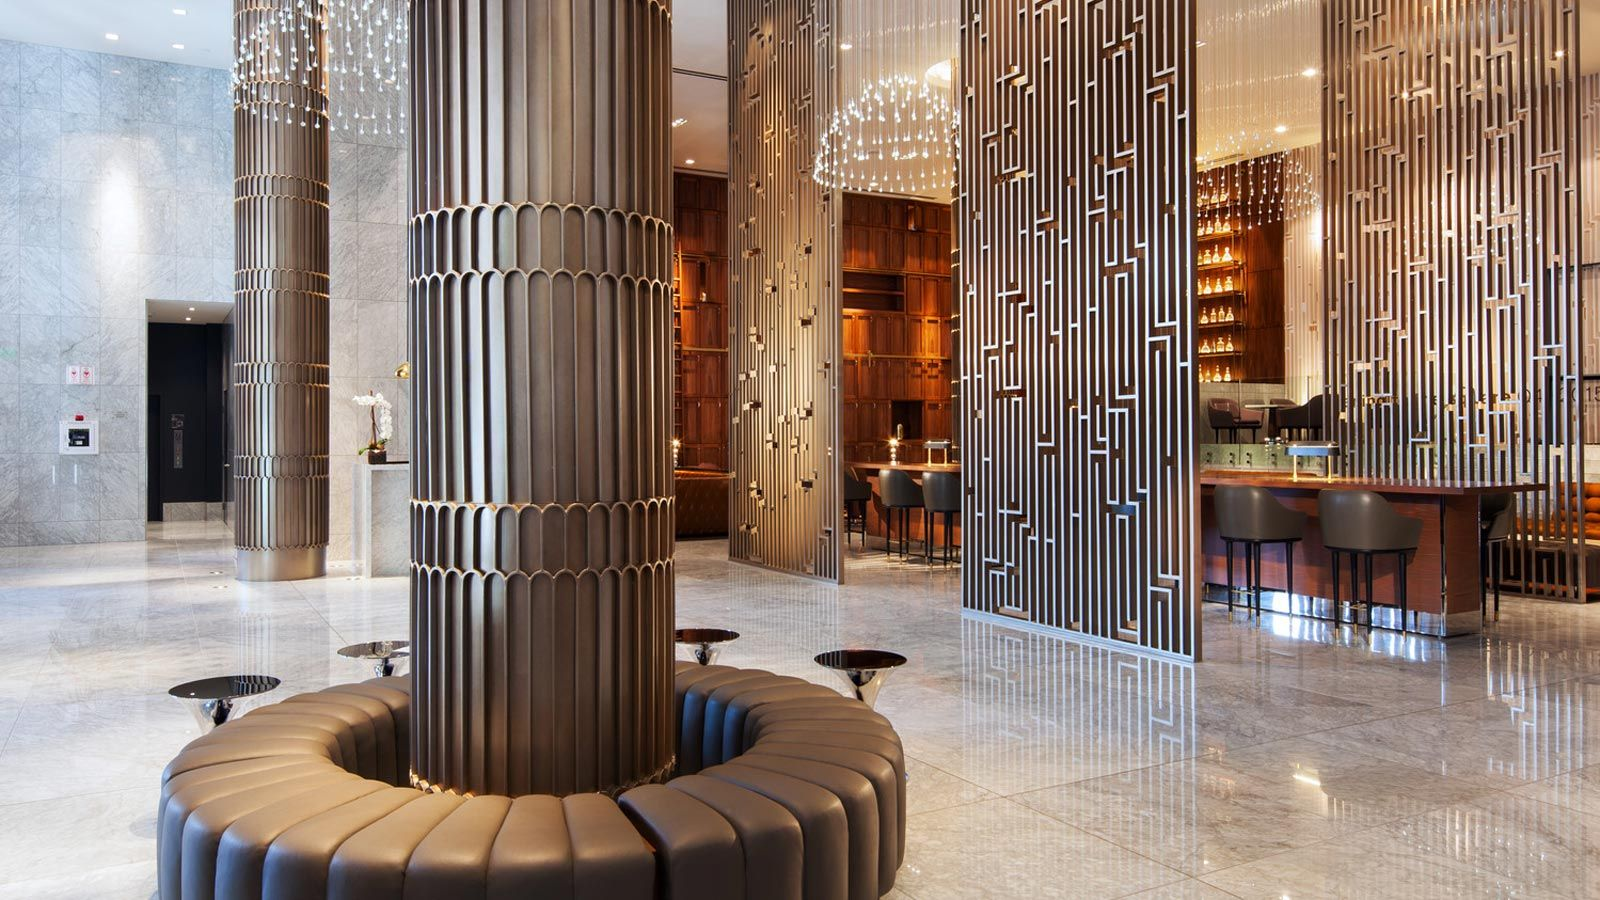 Sheraton grand los angeles lobby entrance column in 2019 for Design consultant los angeles